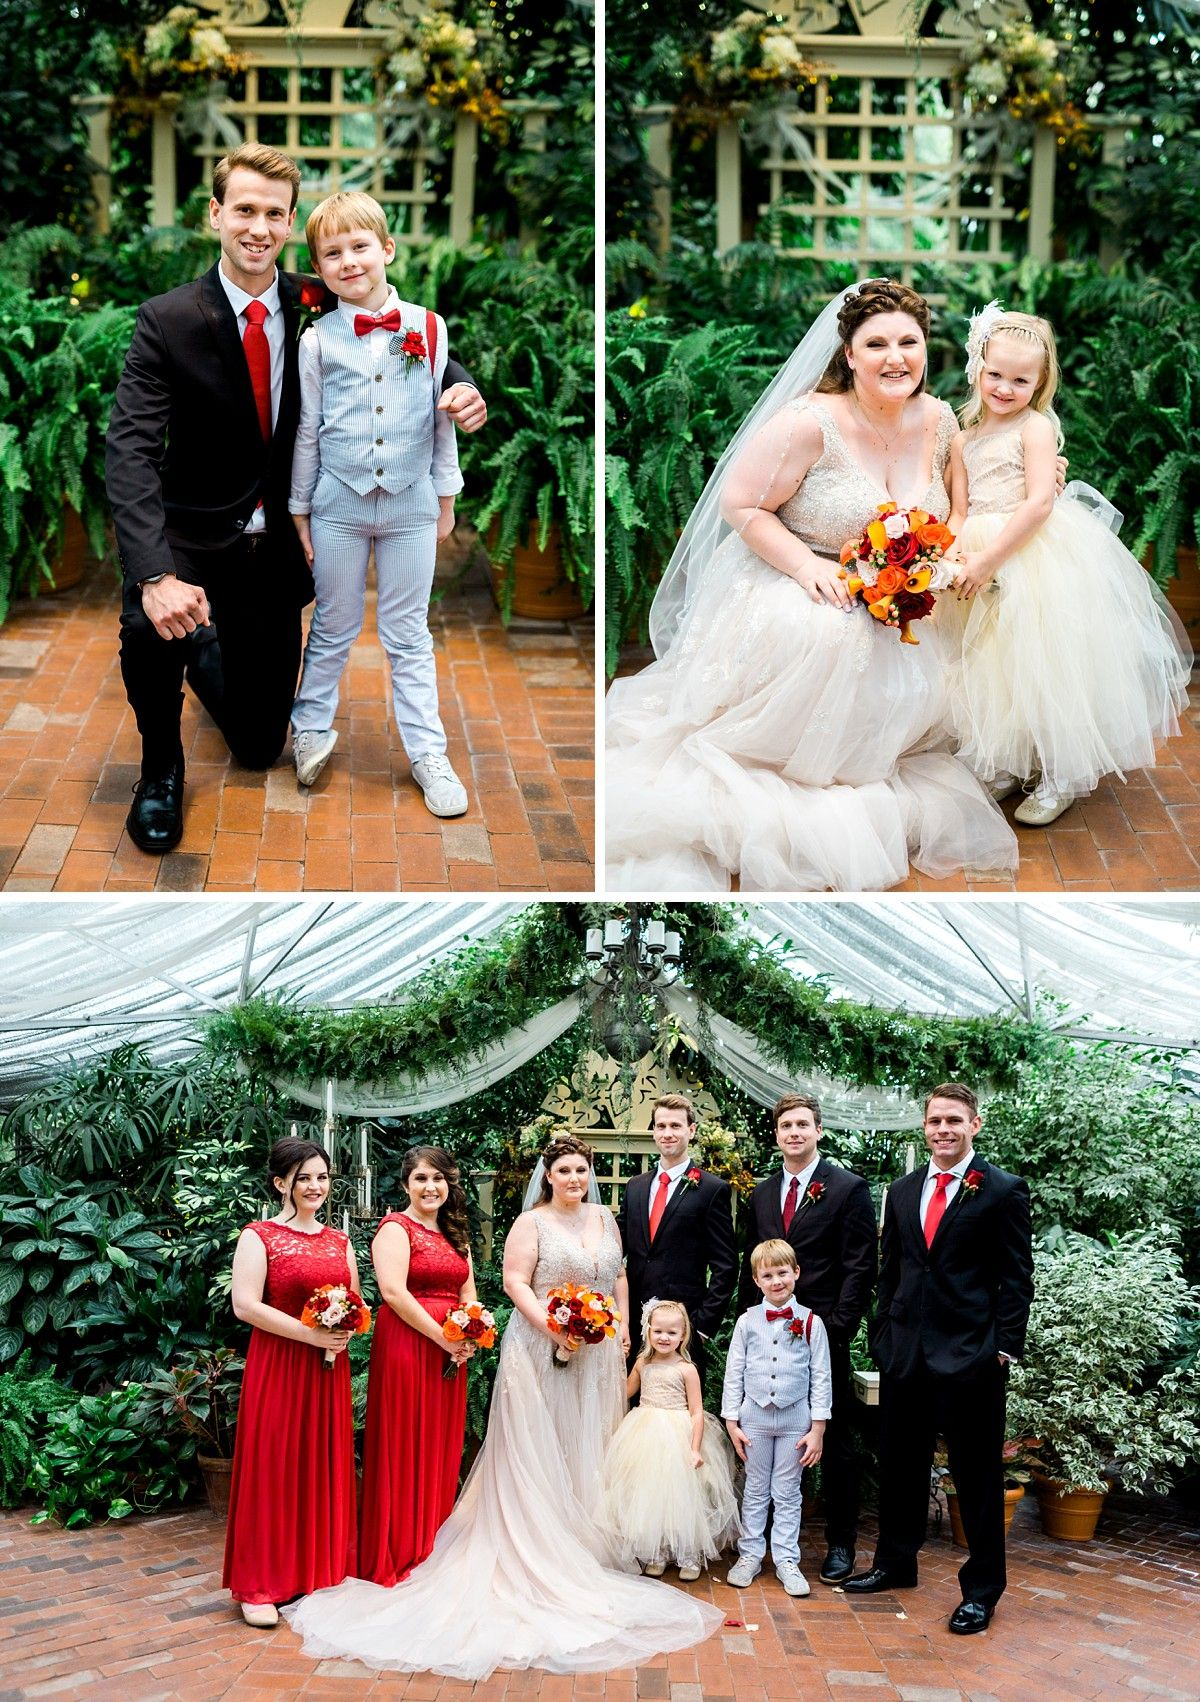 The Conservatory Garden Wedding Julia And Ethan In 2020 Fall Garden Wedding Garden Wedding Wedding Bridesmaids